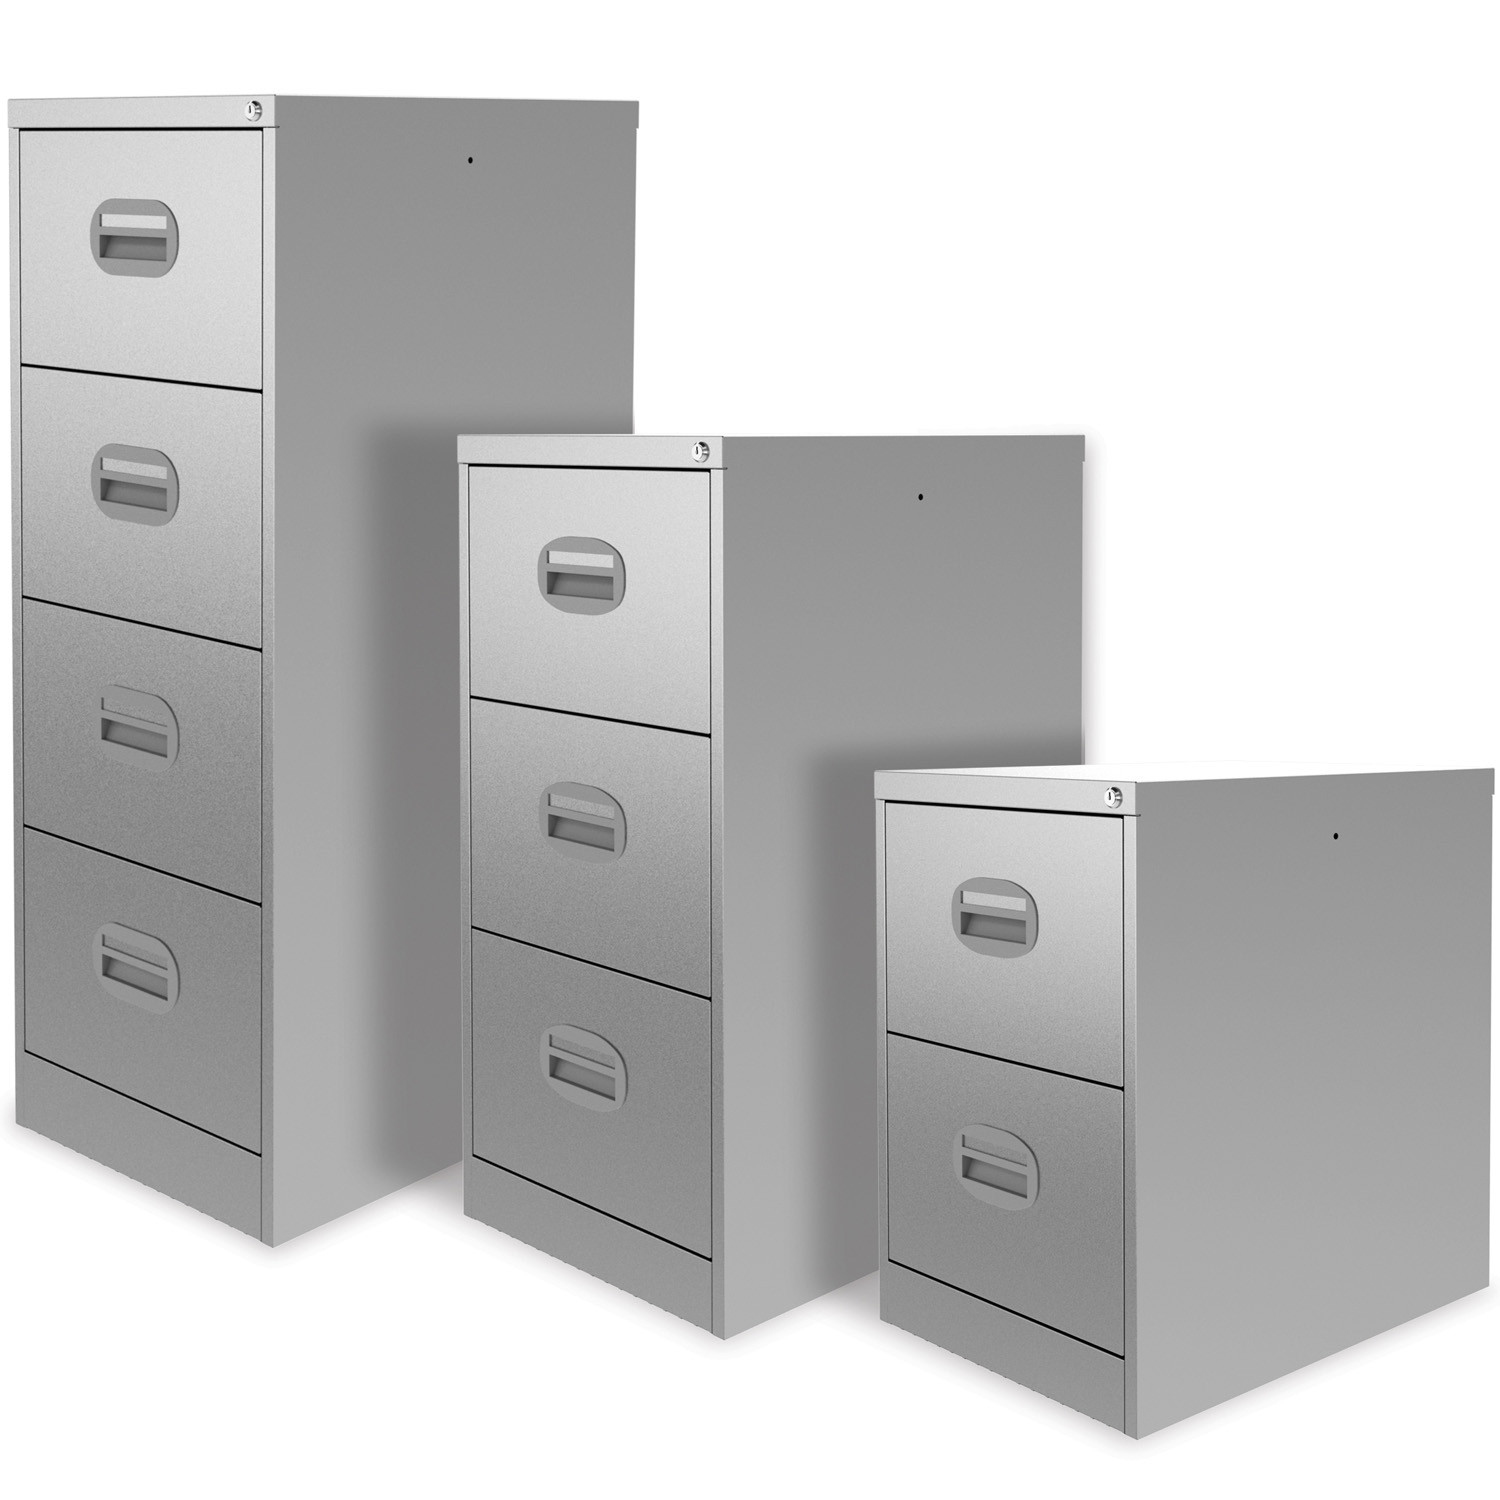 Midi Filing Cabinet Range Sizes